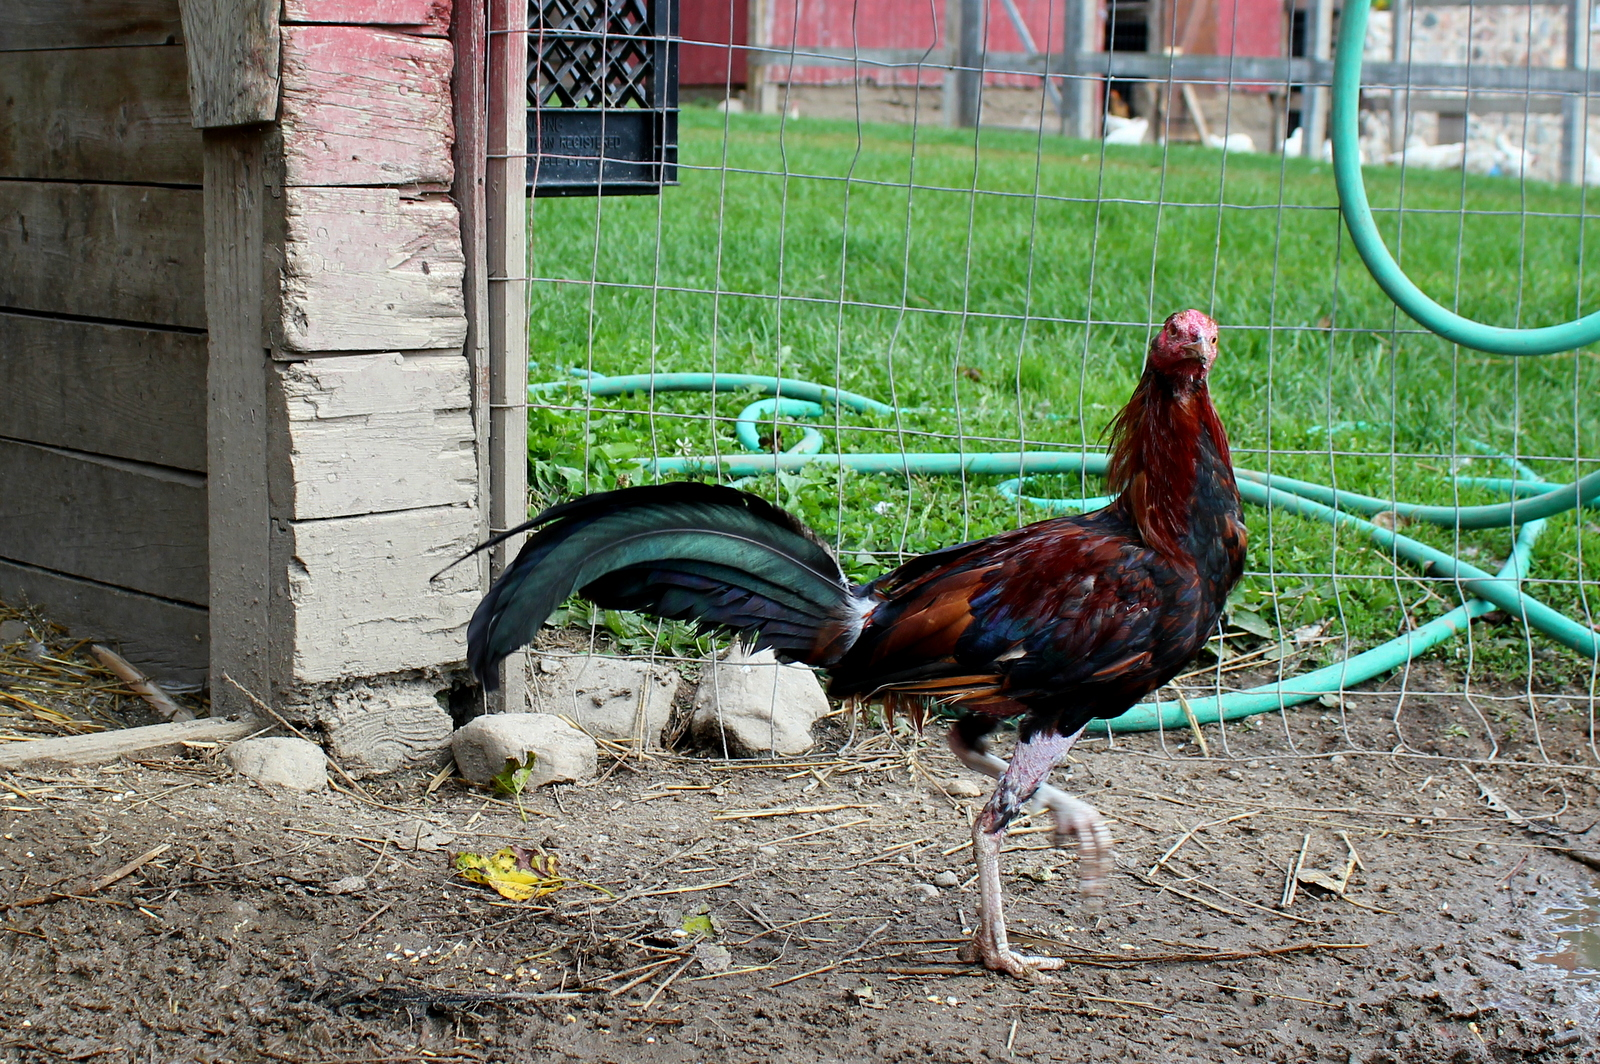 The Cleveland Twelve: Rehabilitating Cock-Fighting Roosters